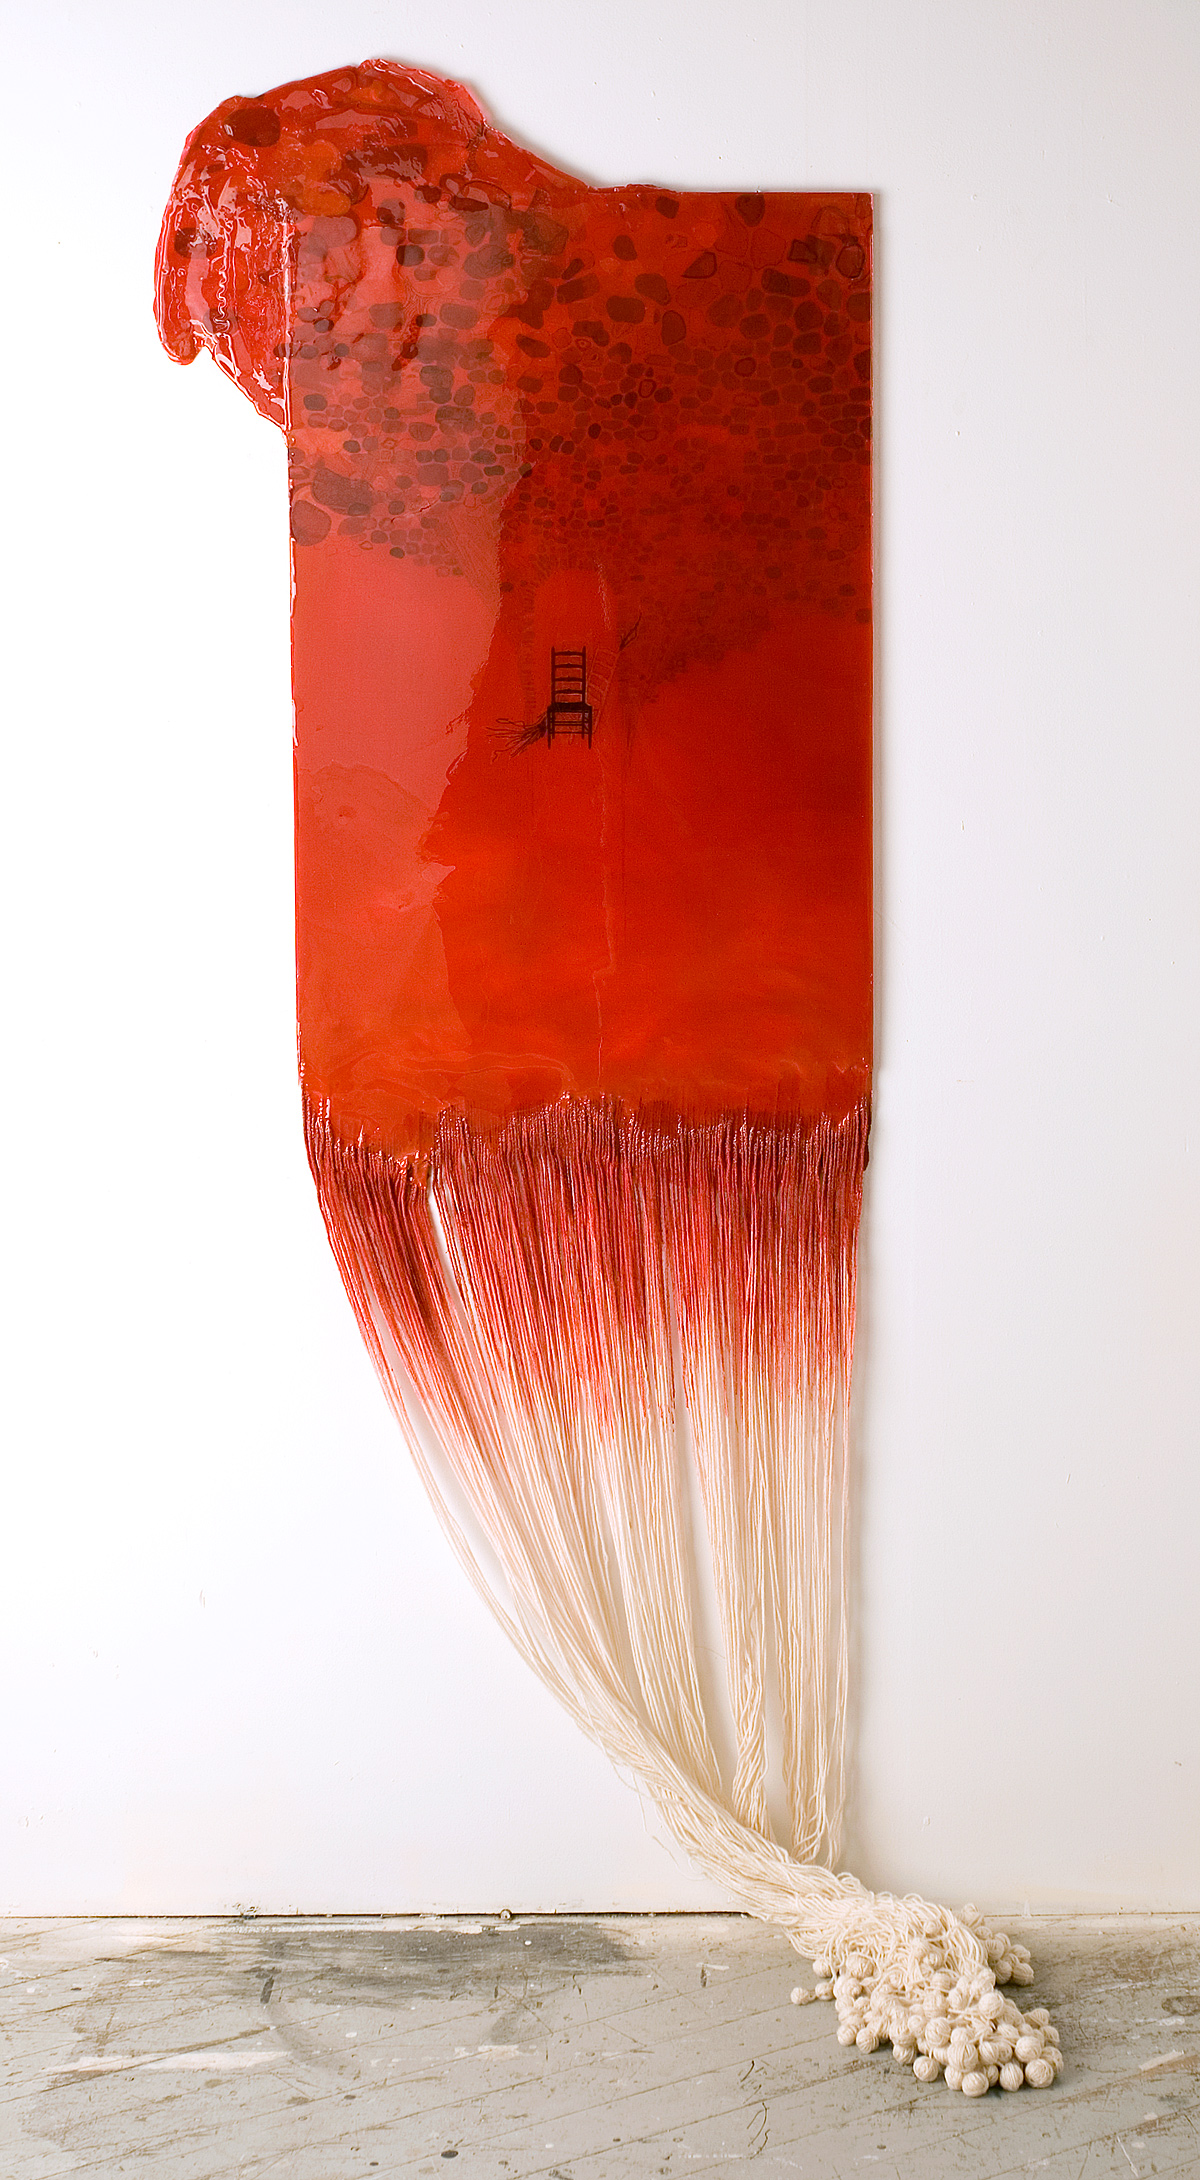 Citadel  Board, paper, yarn, epoxy resin, 2012